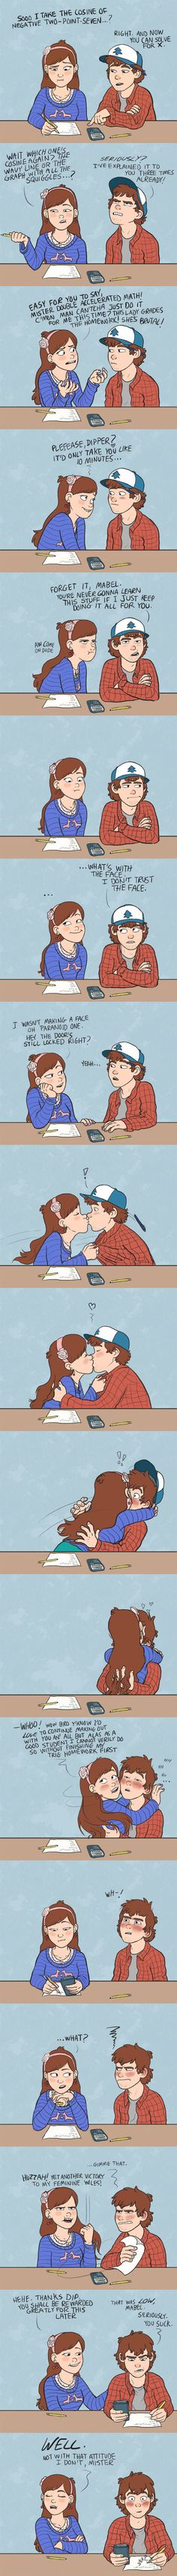 Trust me I'm HATE pinecest but I love this comic with out the kiss